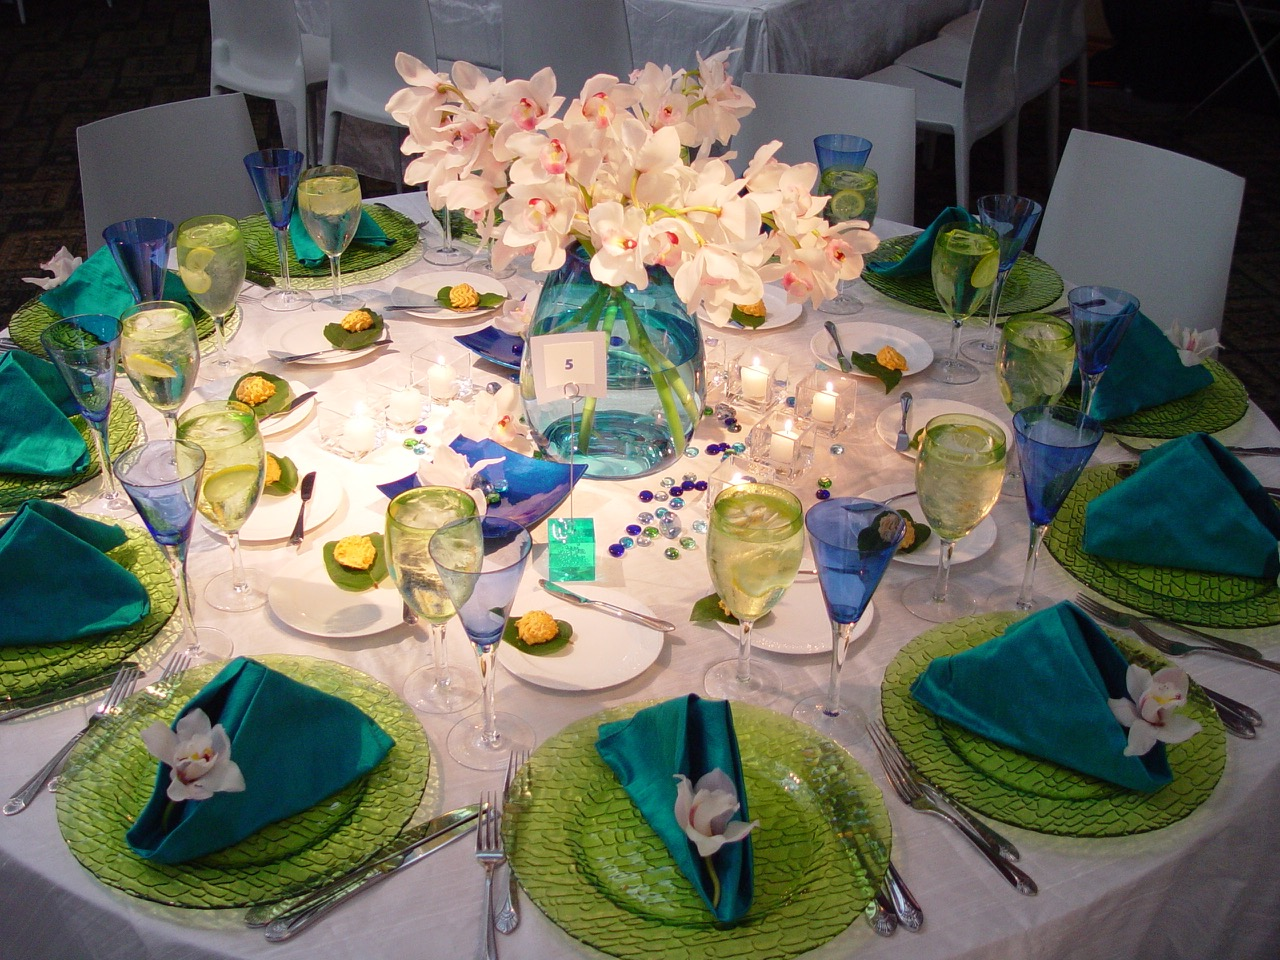 Event+Decor+Design+Lighting+NJ+NYC+Eggsotic+Events+NJs+Best+Event+Decorator+Event+Lighting+Event+Design+Wedding+Bar+Mitzvah+Bat+Mitzvah+Gala+Fundraiser+25.jpg